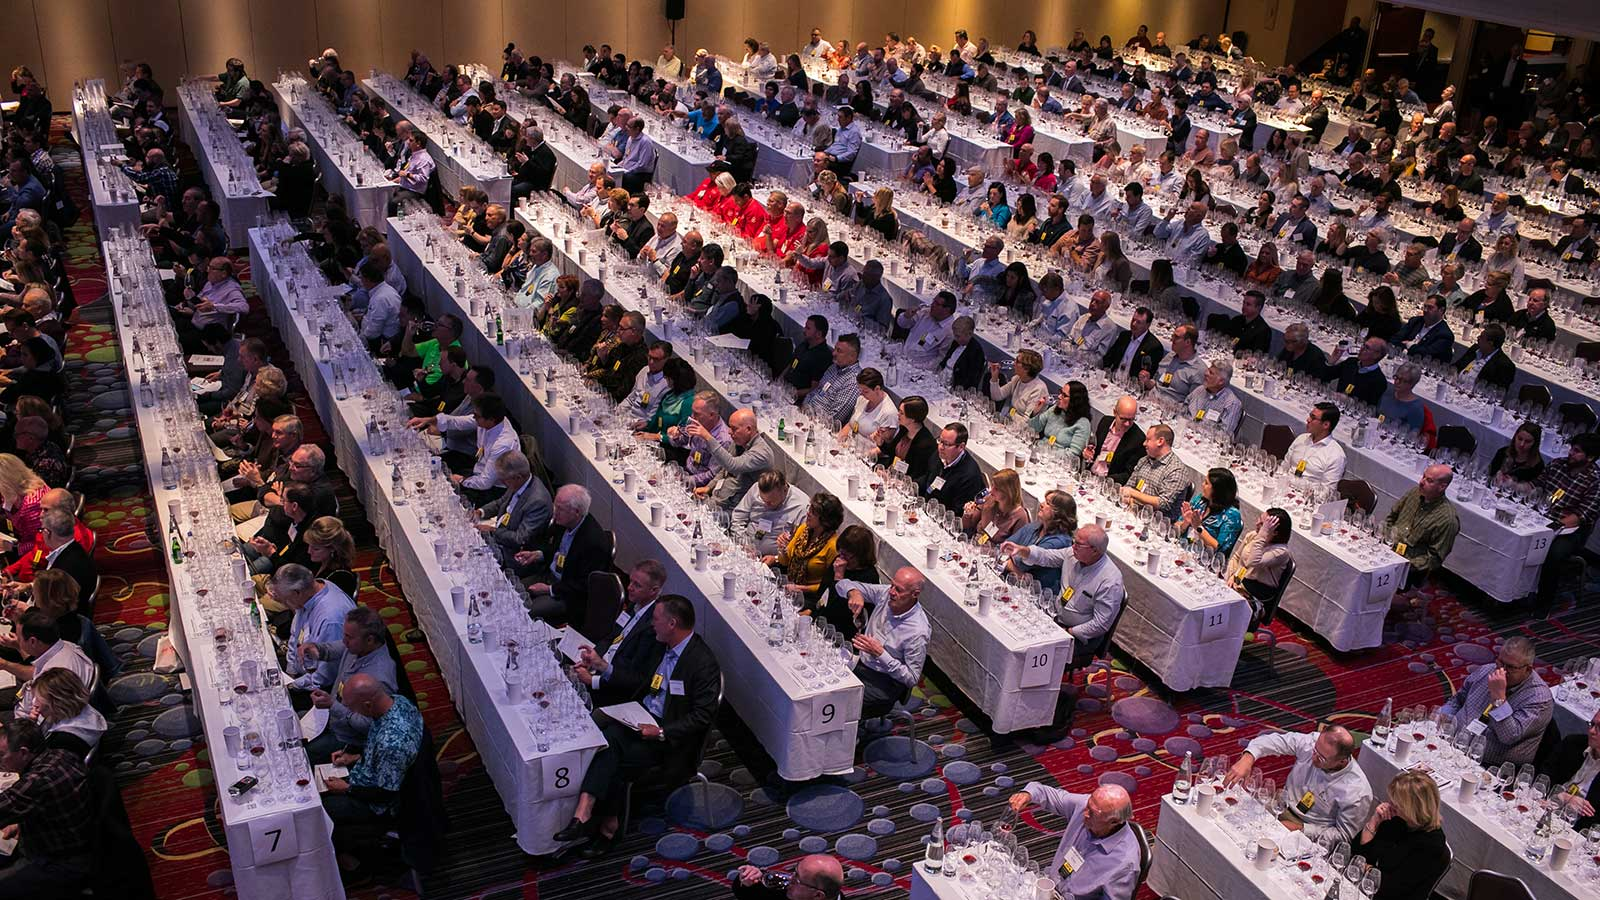 Overview of the 2019 Wine Experience seminar room